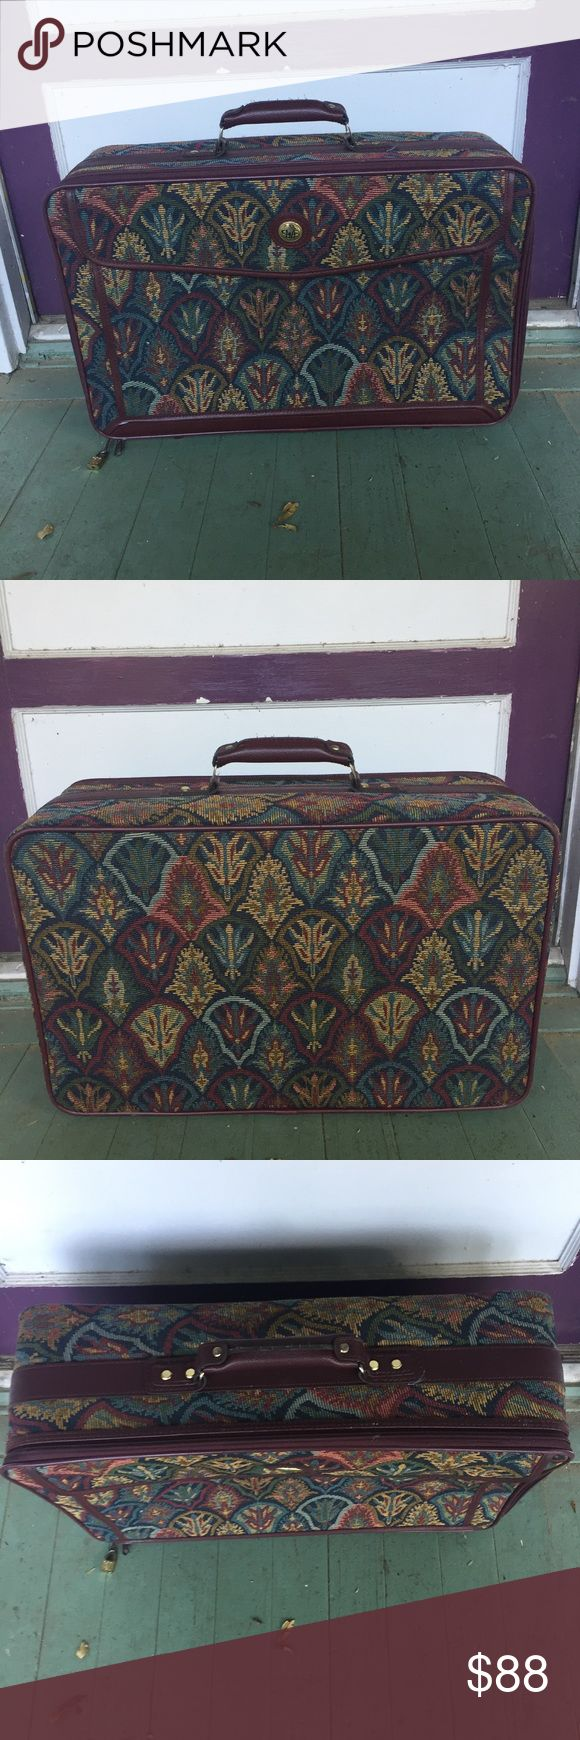 Rare VTG Diane Von Furstenberg Tapestry Suitcase Final Price! Dropped from 90 already! Rare Diane Von Furstenberg Awesome VTG 80's Suitcase/Luggage. In great VTG condition. Stands  upright on its own. This lovely suitcase features Art Deco floral tapestry fabric with burgundy leather details.  Suitcase is lined w/ zippered compartment & belt to secure items. Also has zippered compartment on the back.  *See comments for more info Diane Von Furstenberg Bags Travel Bags